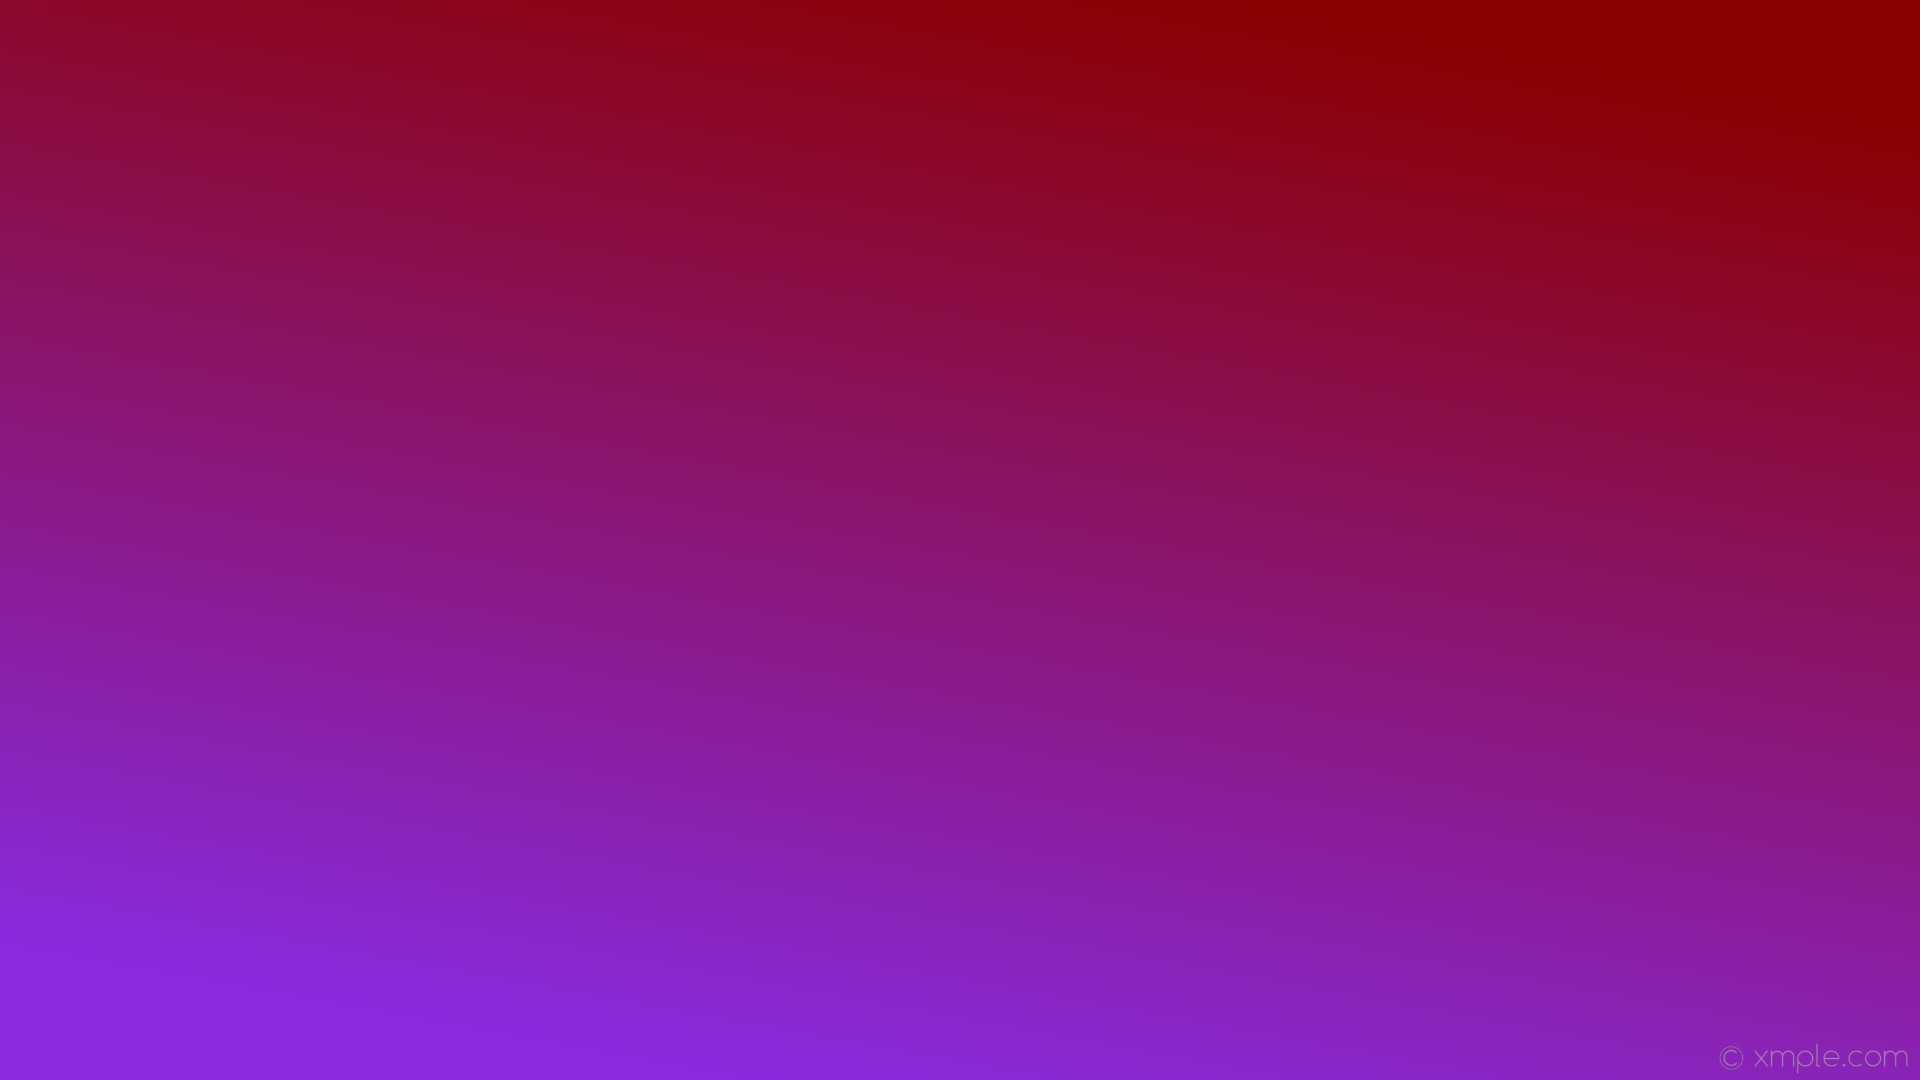 1920x1080 wallpaper gradient linear red purple blue violet dark red #8a2be2 #8b0000  240°